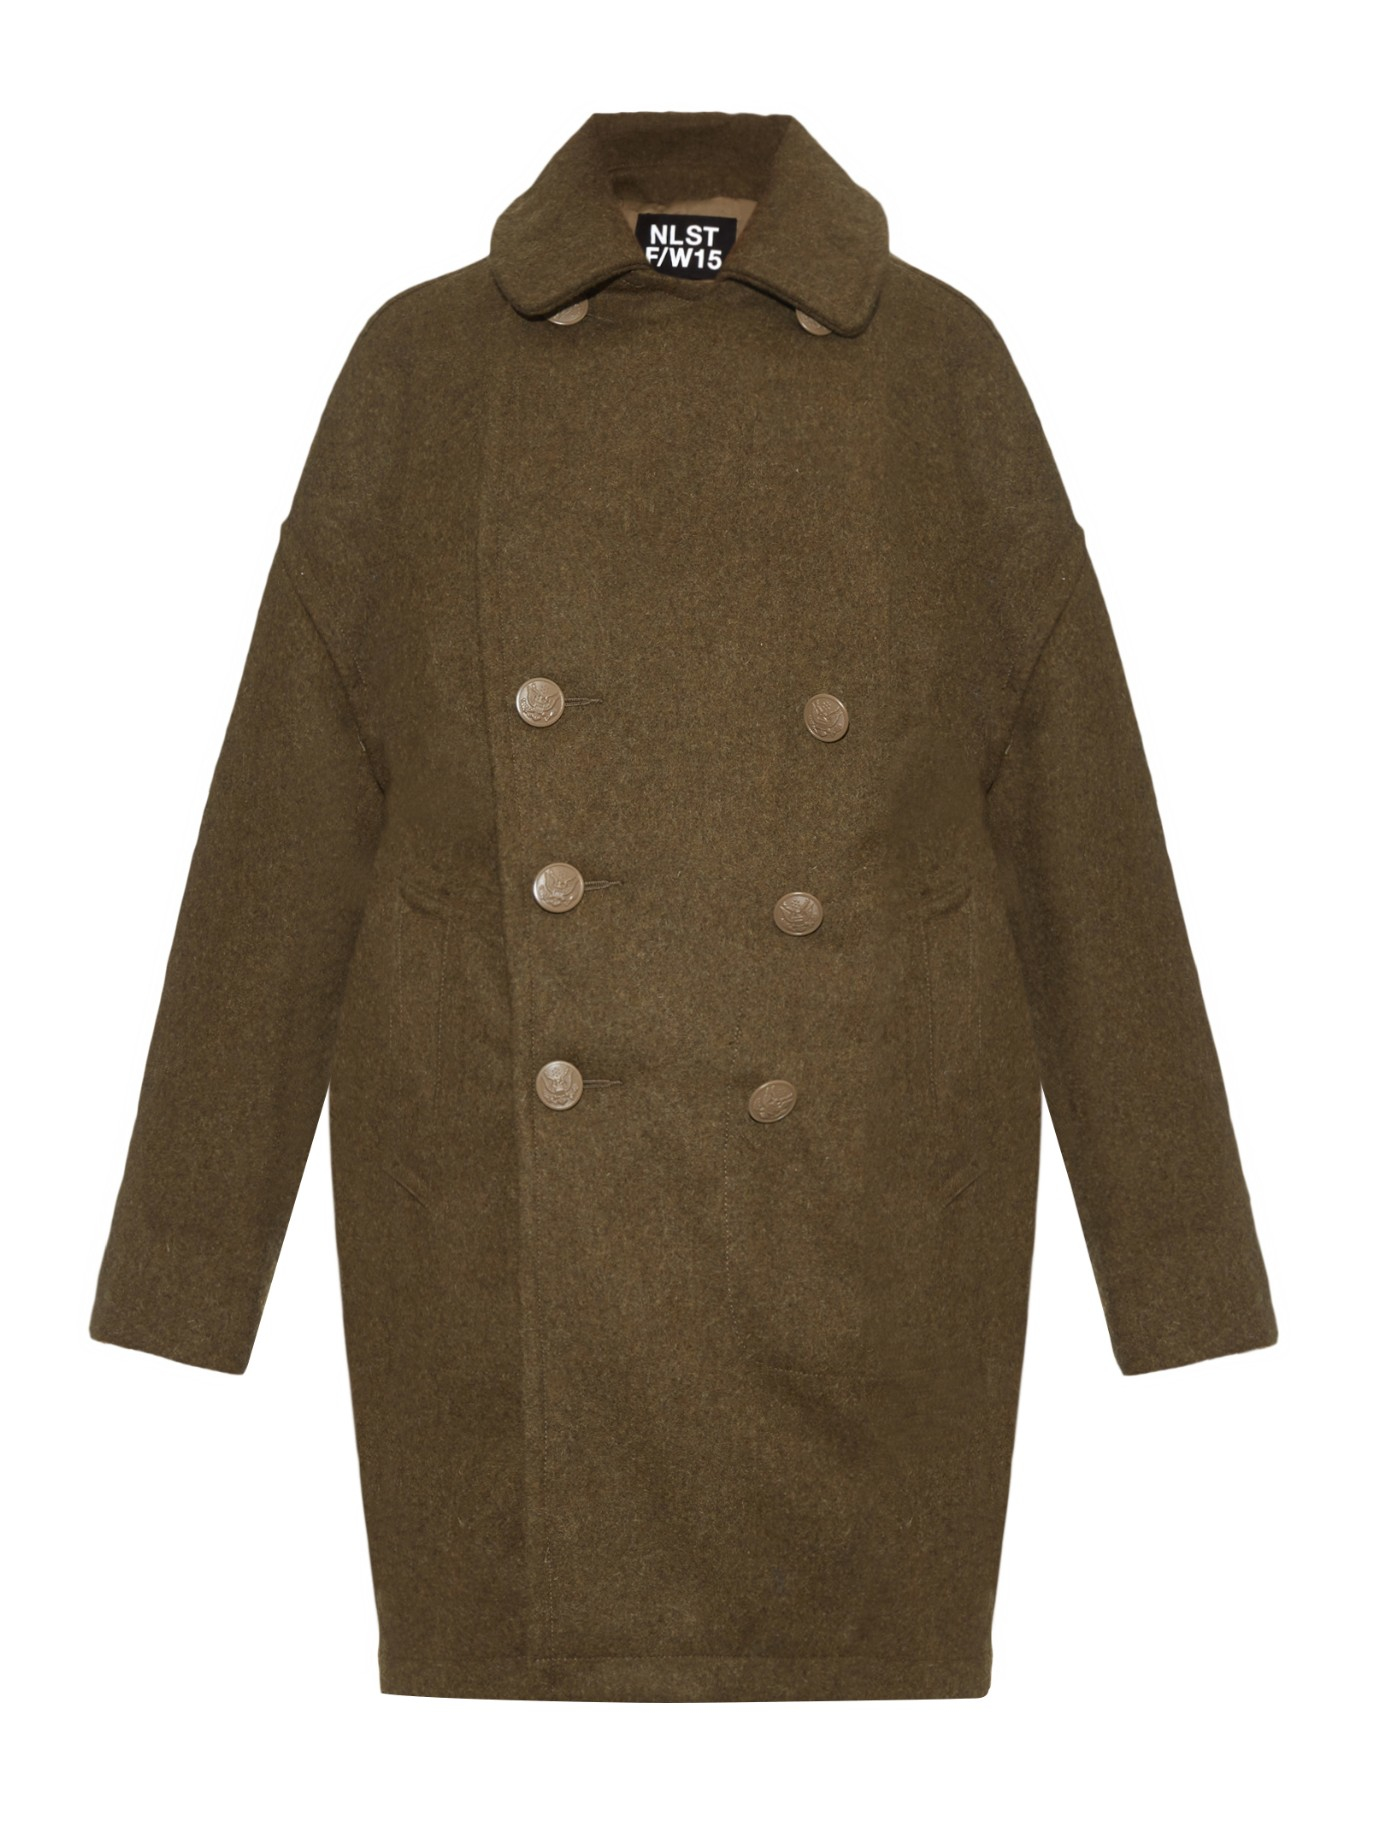 Nlst Military Melton-wool Coat in Natural | Lyst